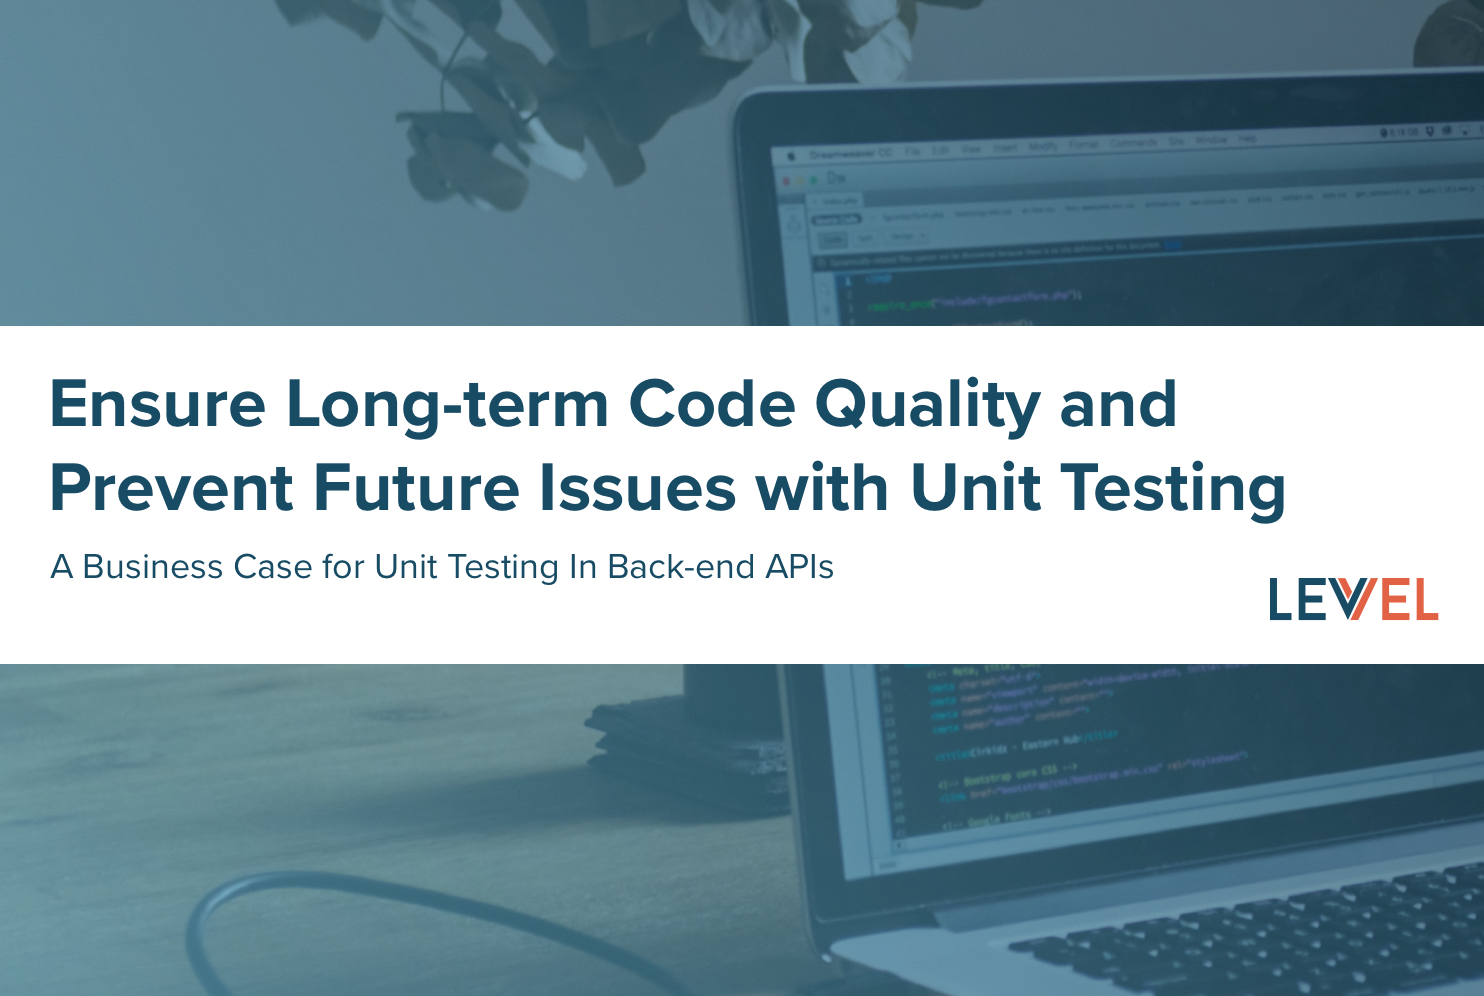 Ensure Long-term Code Quality and Prevent Future Issues with Unit Testing